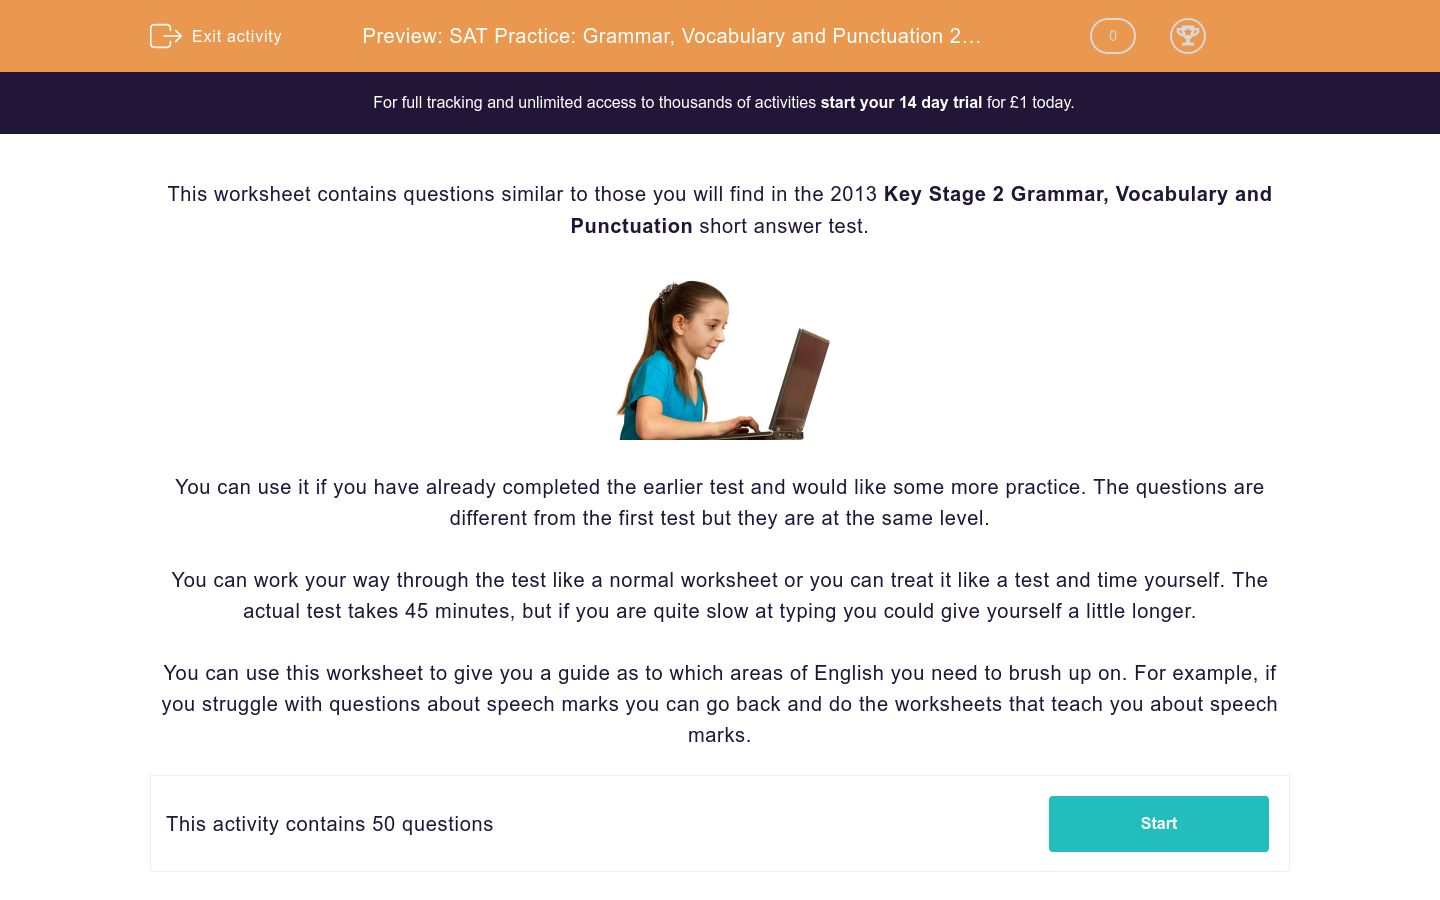 'SAT Practice: Grammar, Vocabulary and Punctuation 2 (2013)' worksheet